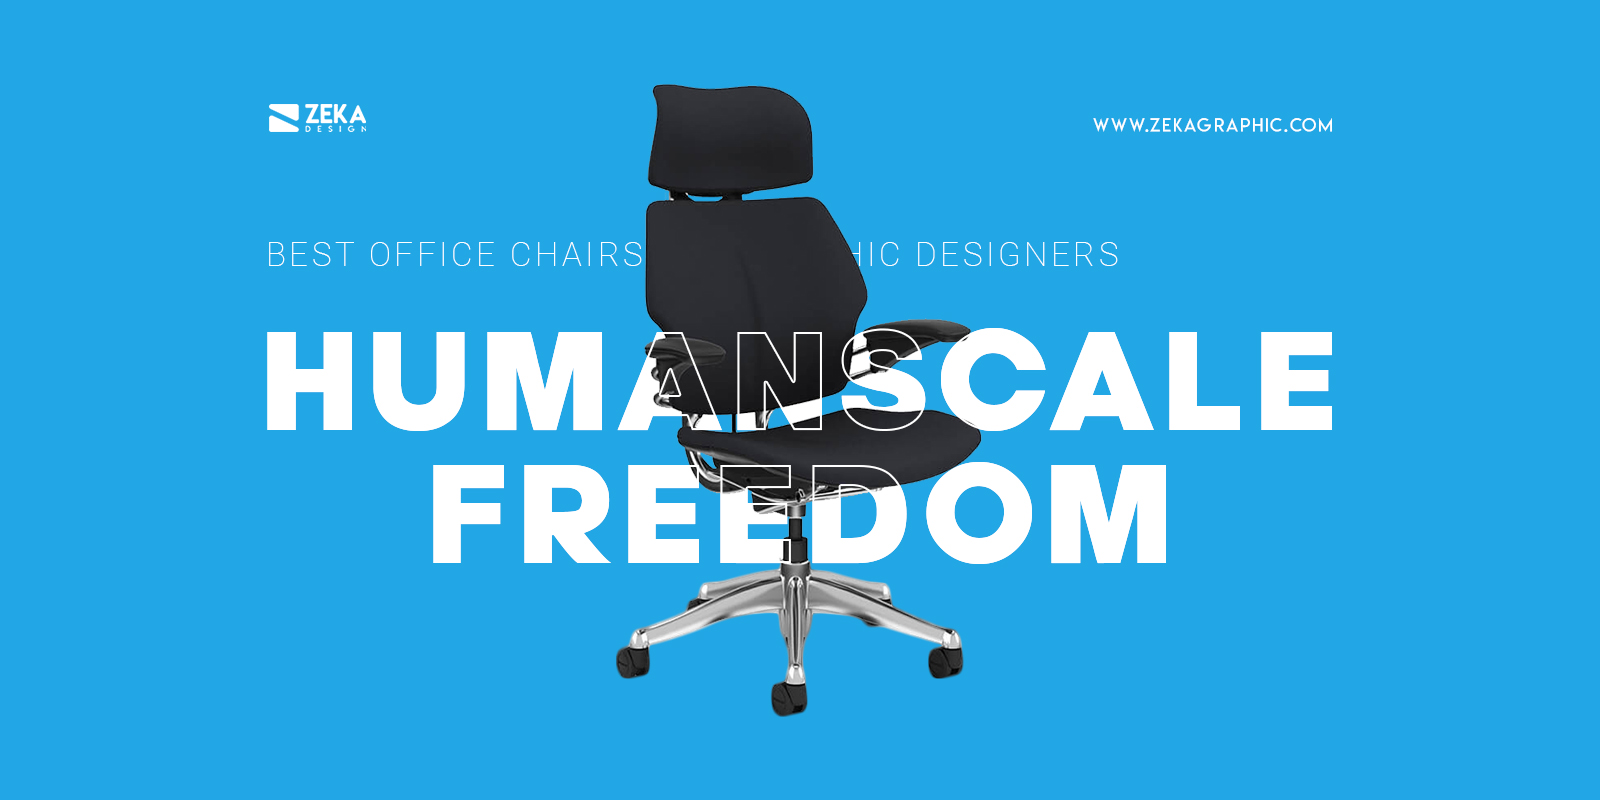 Humanscale Freedom Best Affordable Office Chair For Graphic Designers